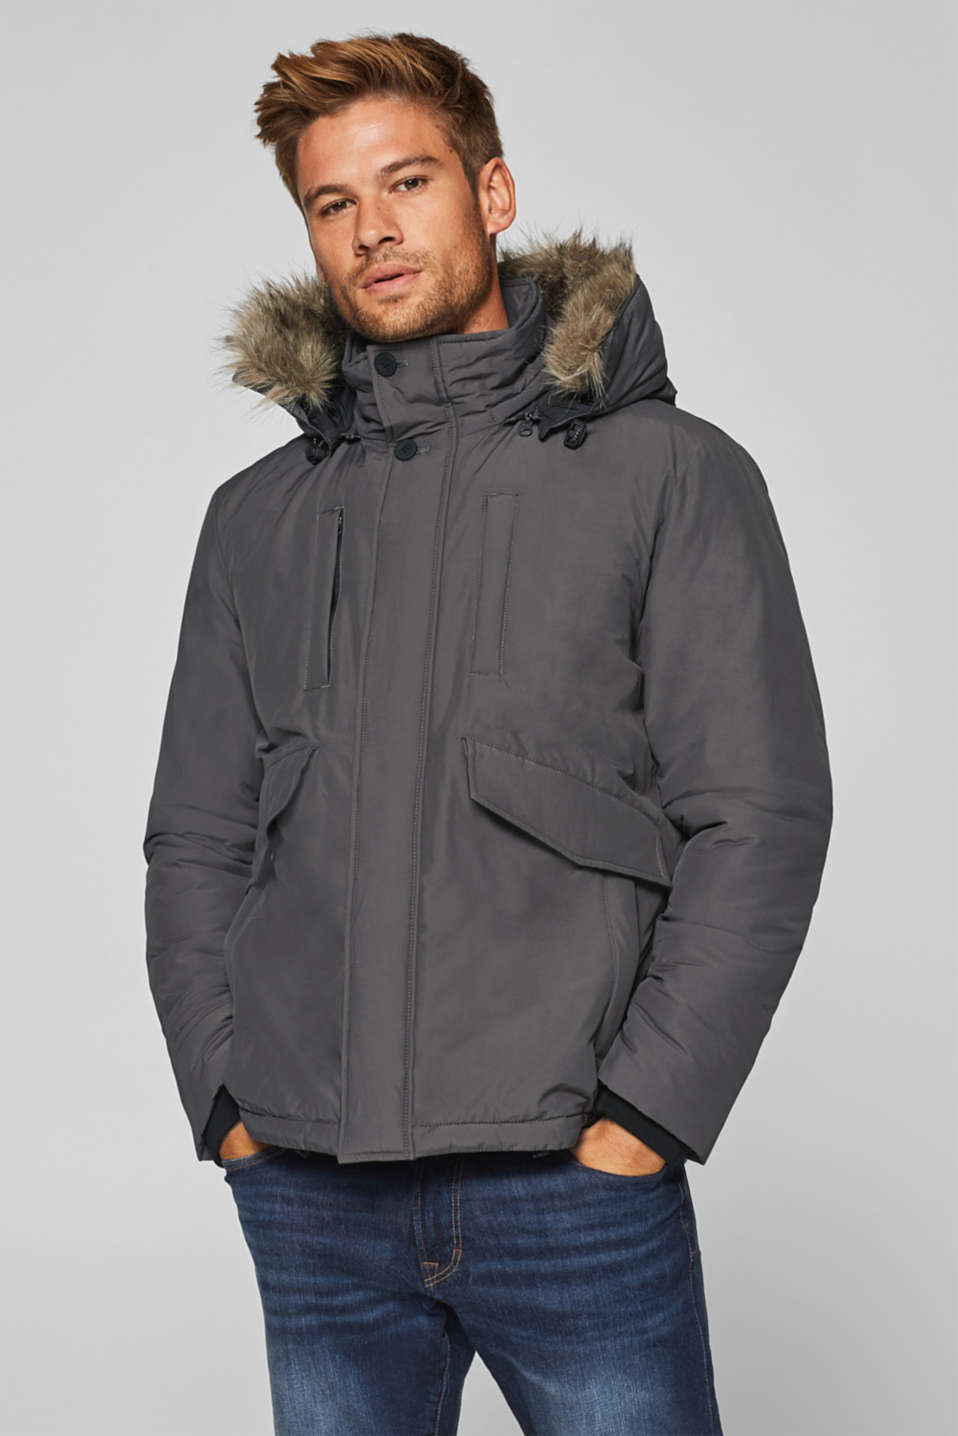 Esprit - Short parka with a woven faux fur-trimmed hood